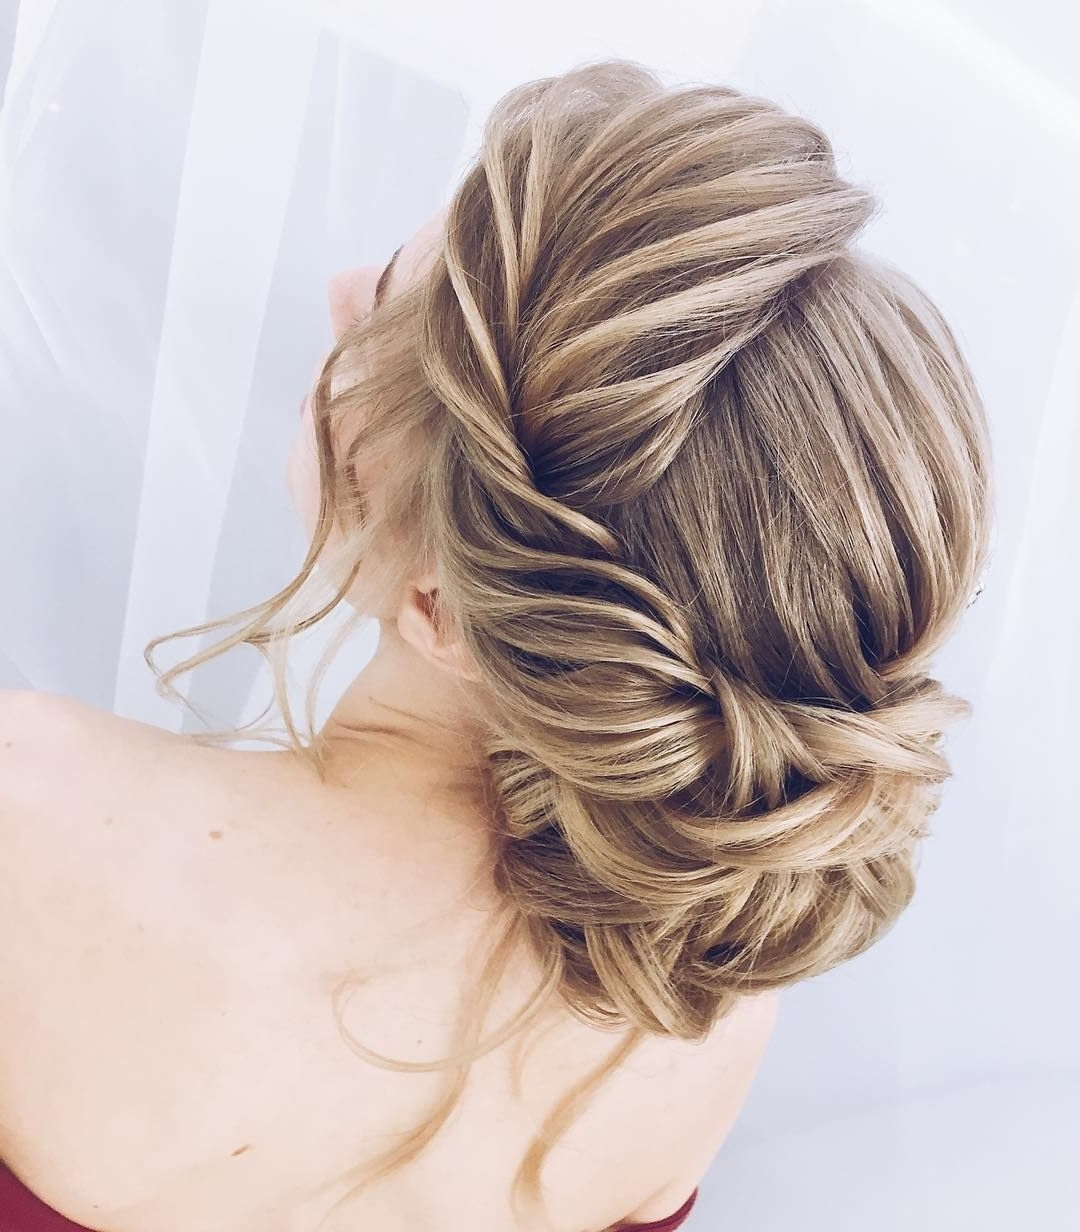 Most Recent Hair Up Wedding Hairstyles Inside 92 Drop Dead Gorgeous Wedding Hairstyles For Every Bride To Be (View 6 of 15)